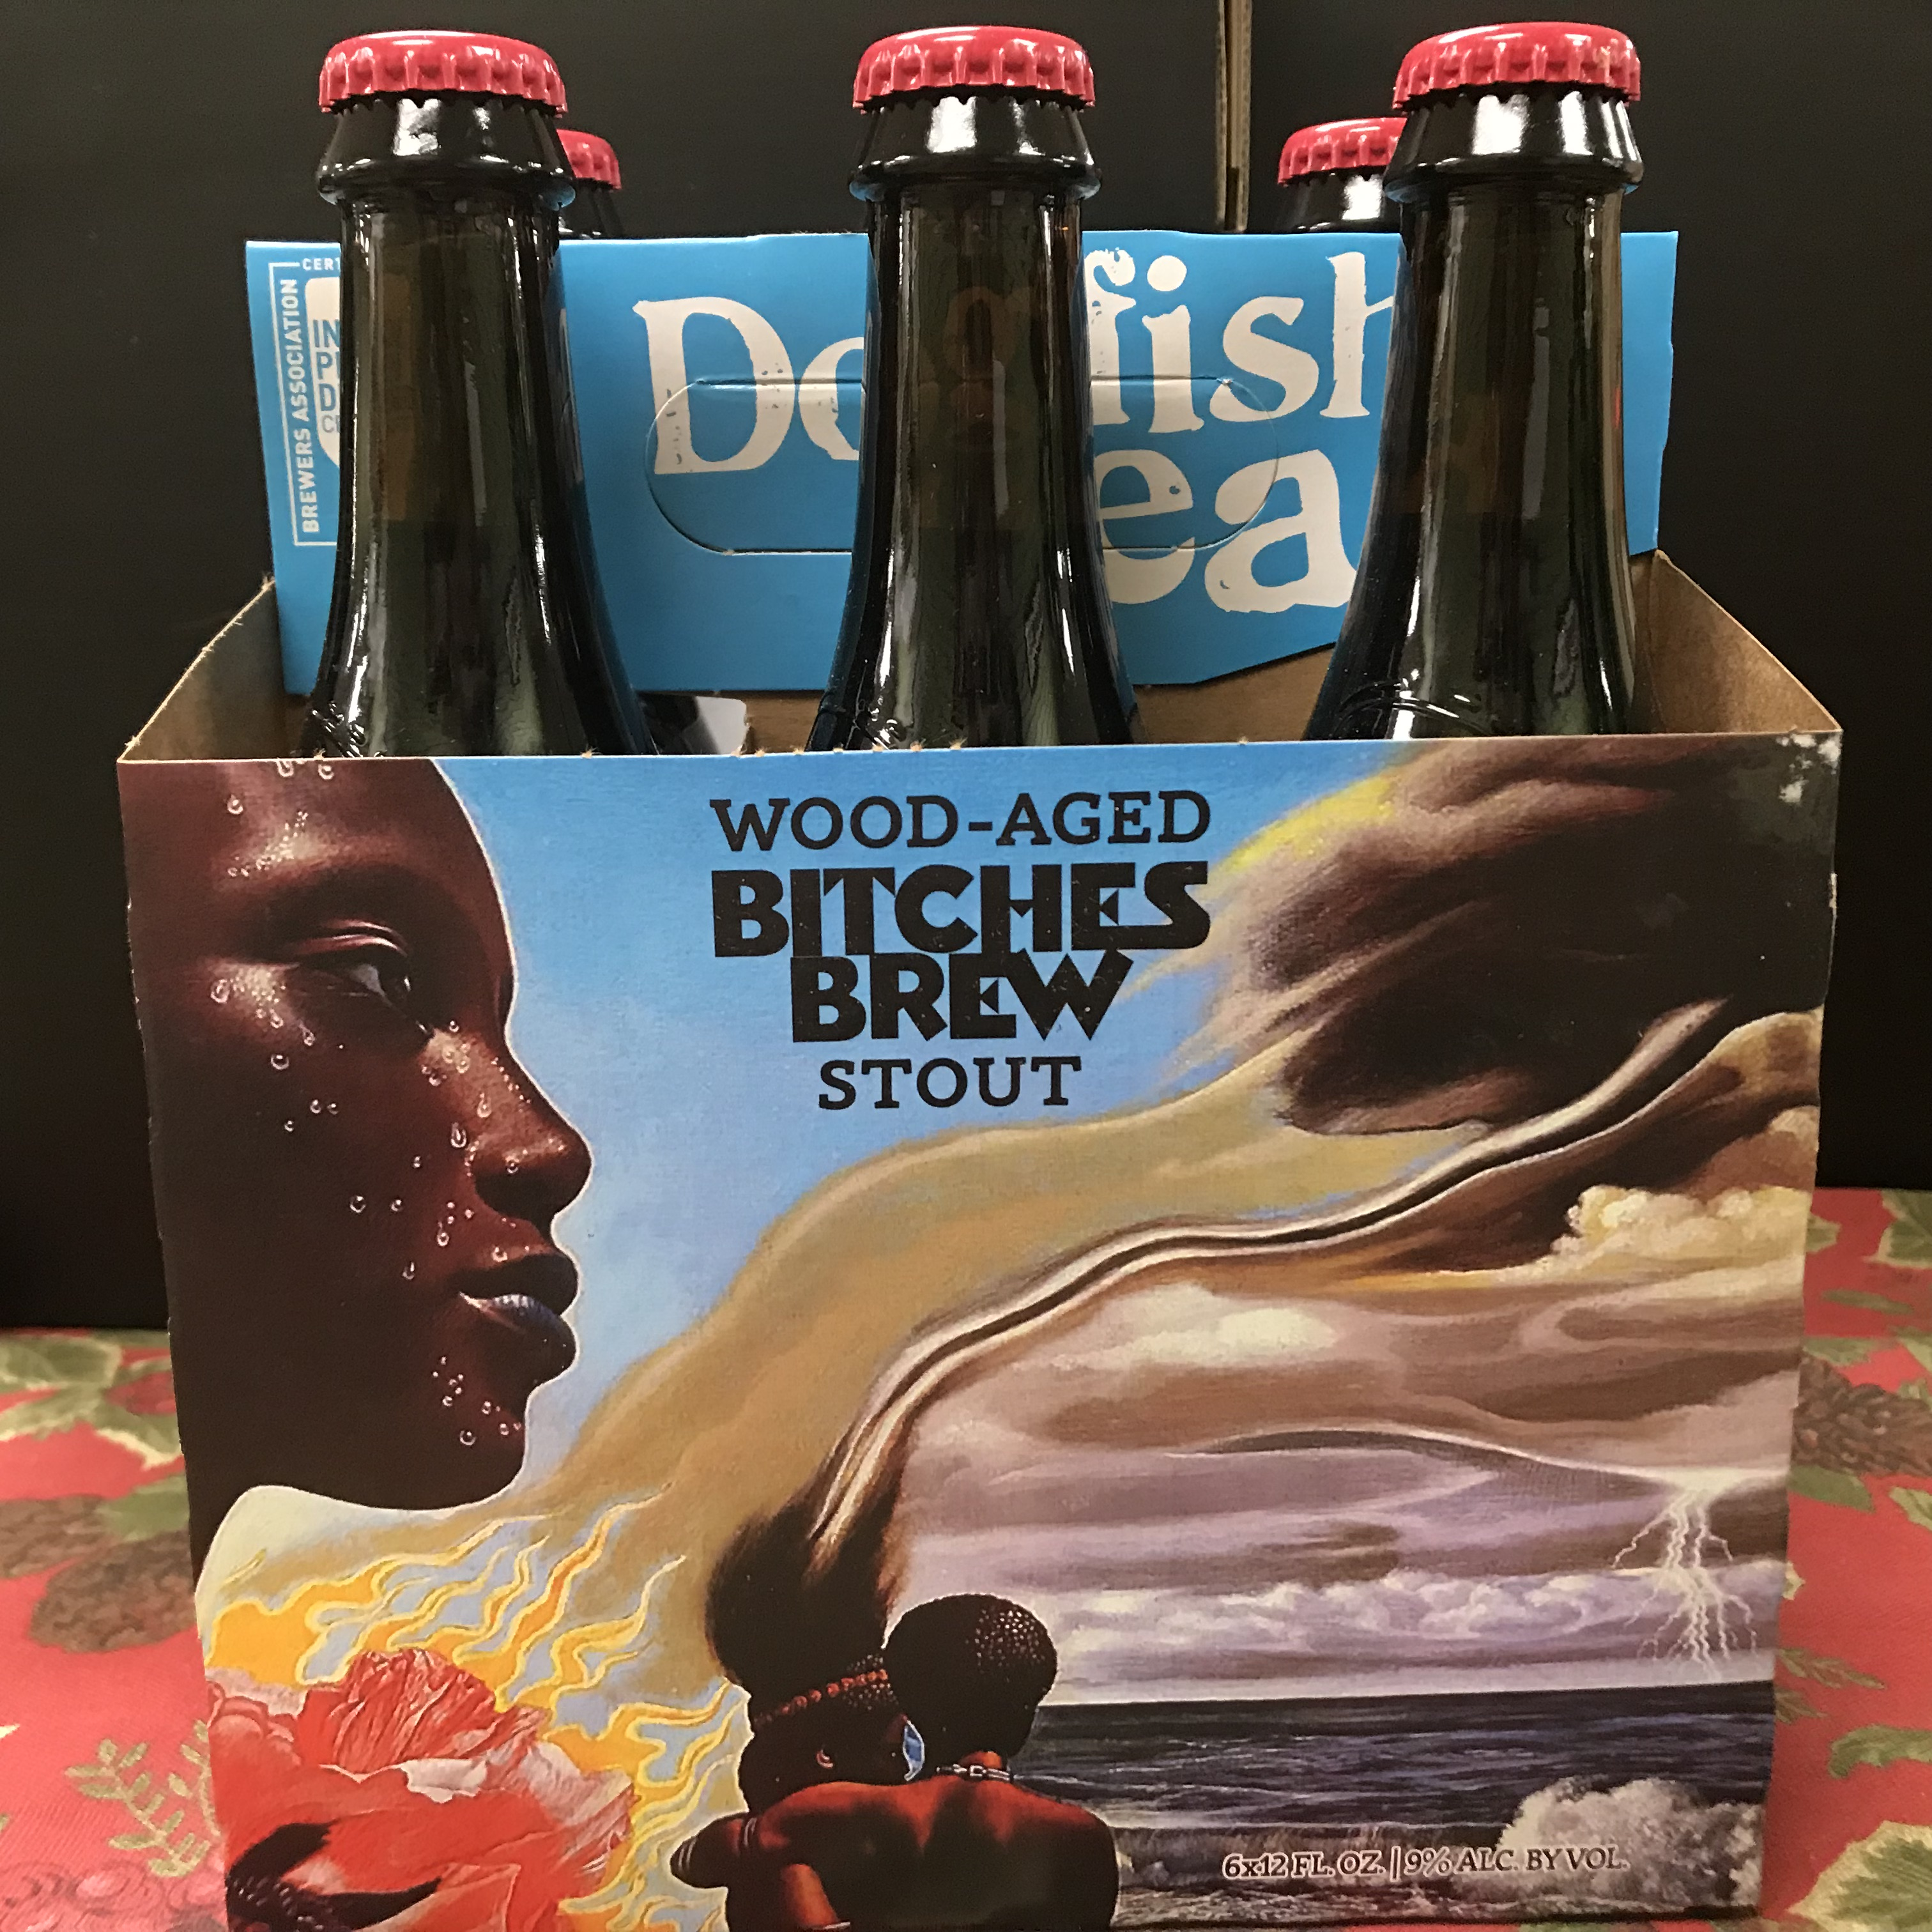 Dogfish Head Bitches Brew Wood Aged Stout 6 x 12oz bottles